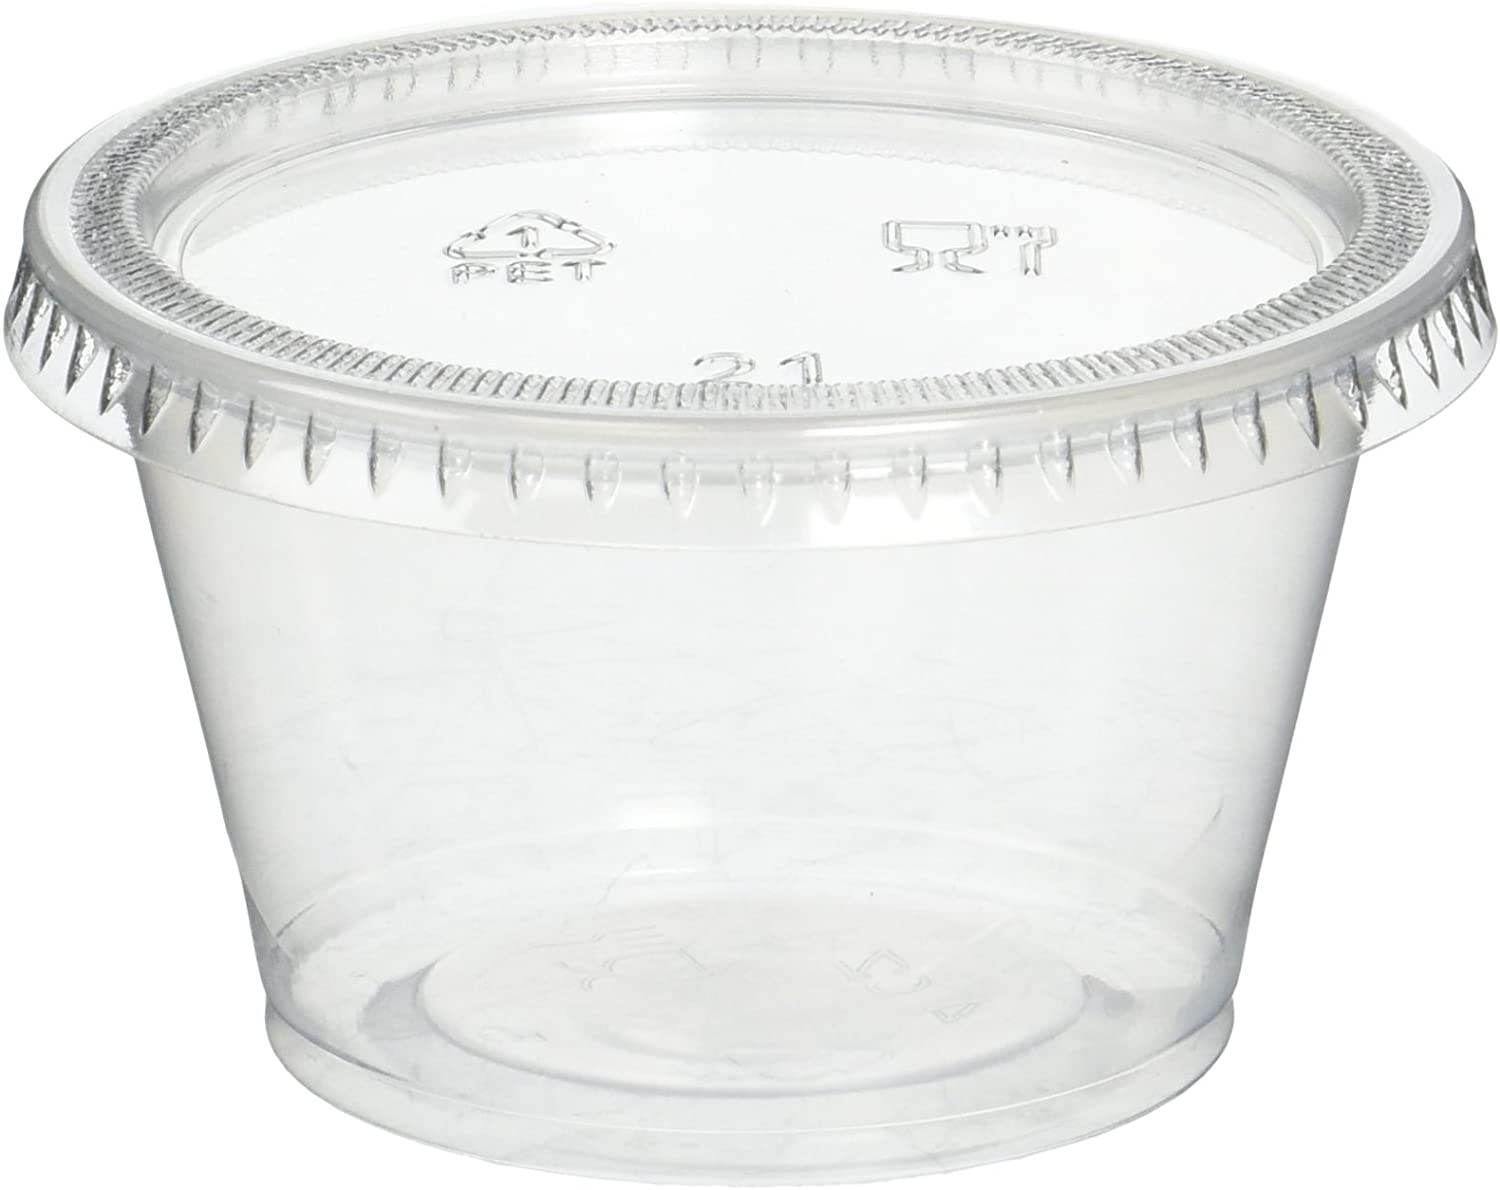 Reditainer Plastic Disposable Portion Cups Souffle Cup with Lids, 4-Ounce, 100-Pack